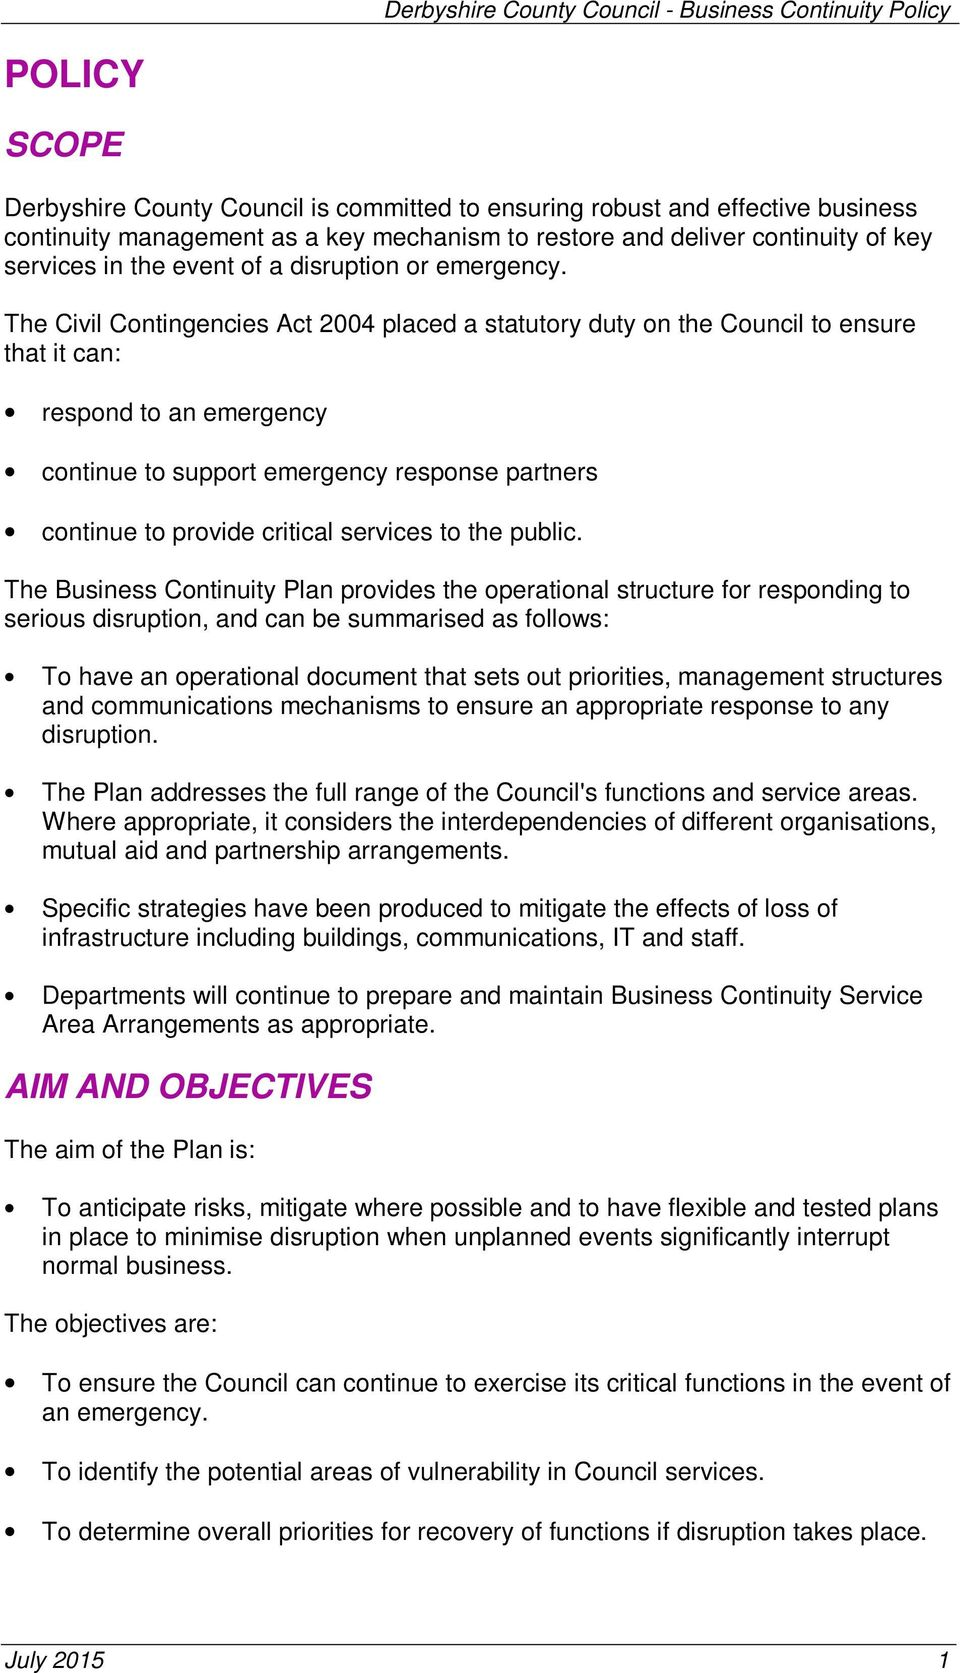 The Civil Contingencies Act 2004 placed a statutory duty on the Council to ensure that it can: respond to an emergency continue to support emergency response partners continue to provide critical